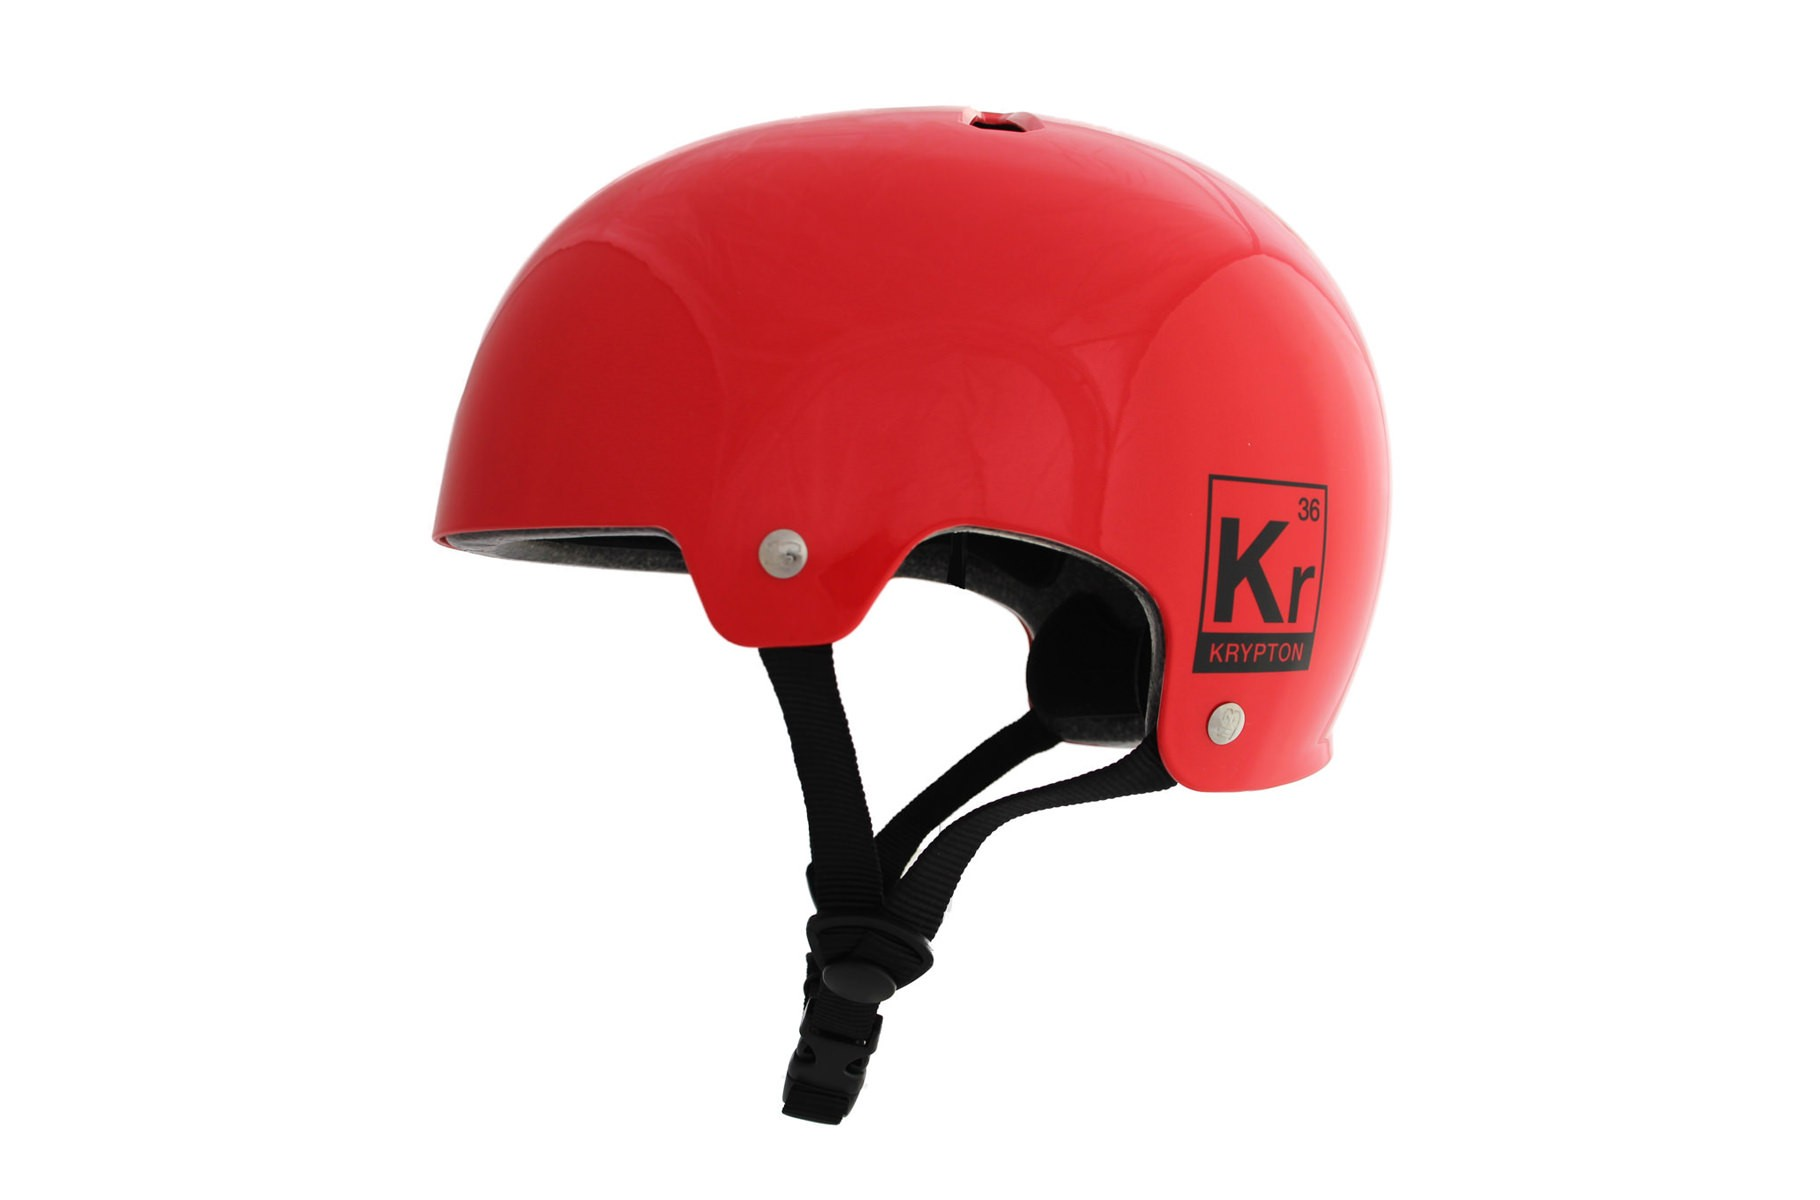 ALK13 Helmet Krypton Red Glossy